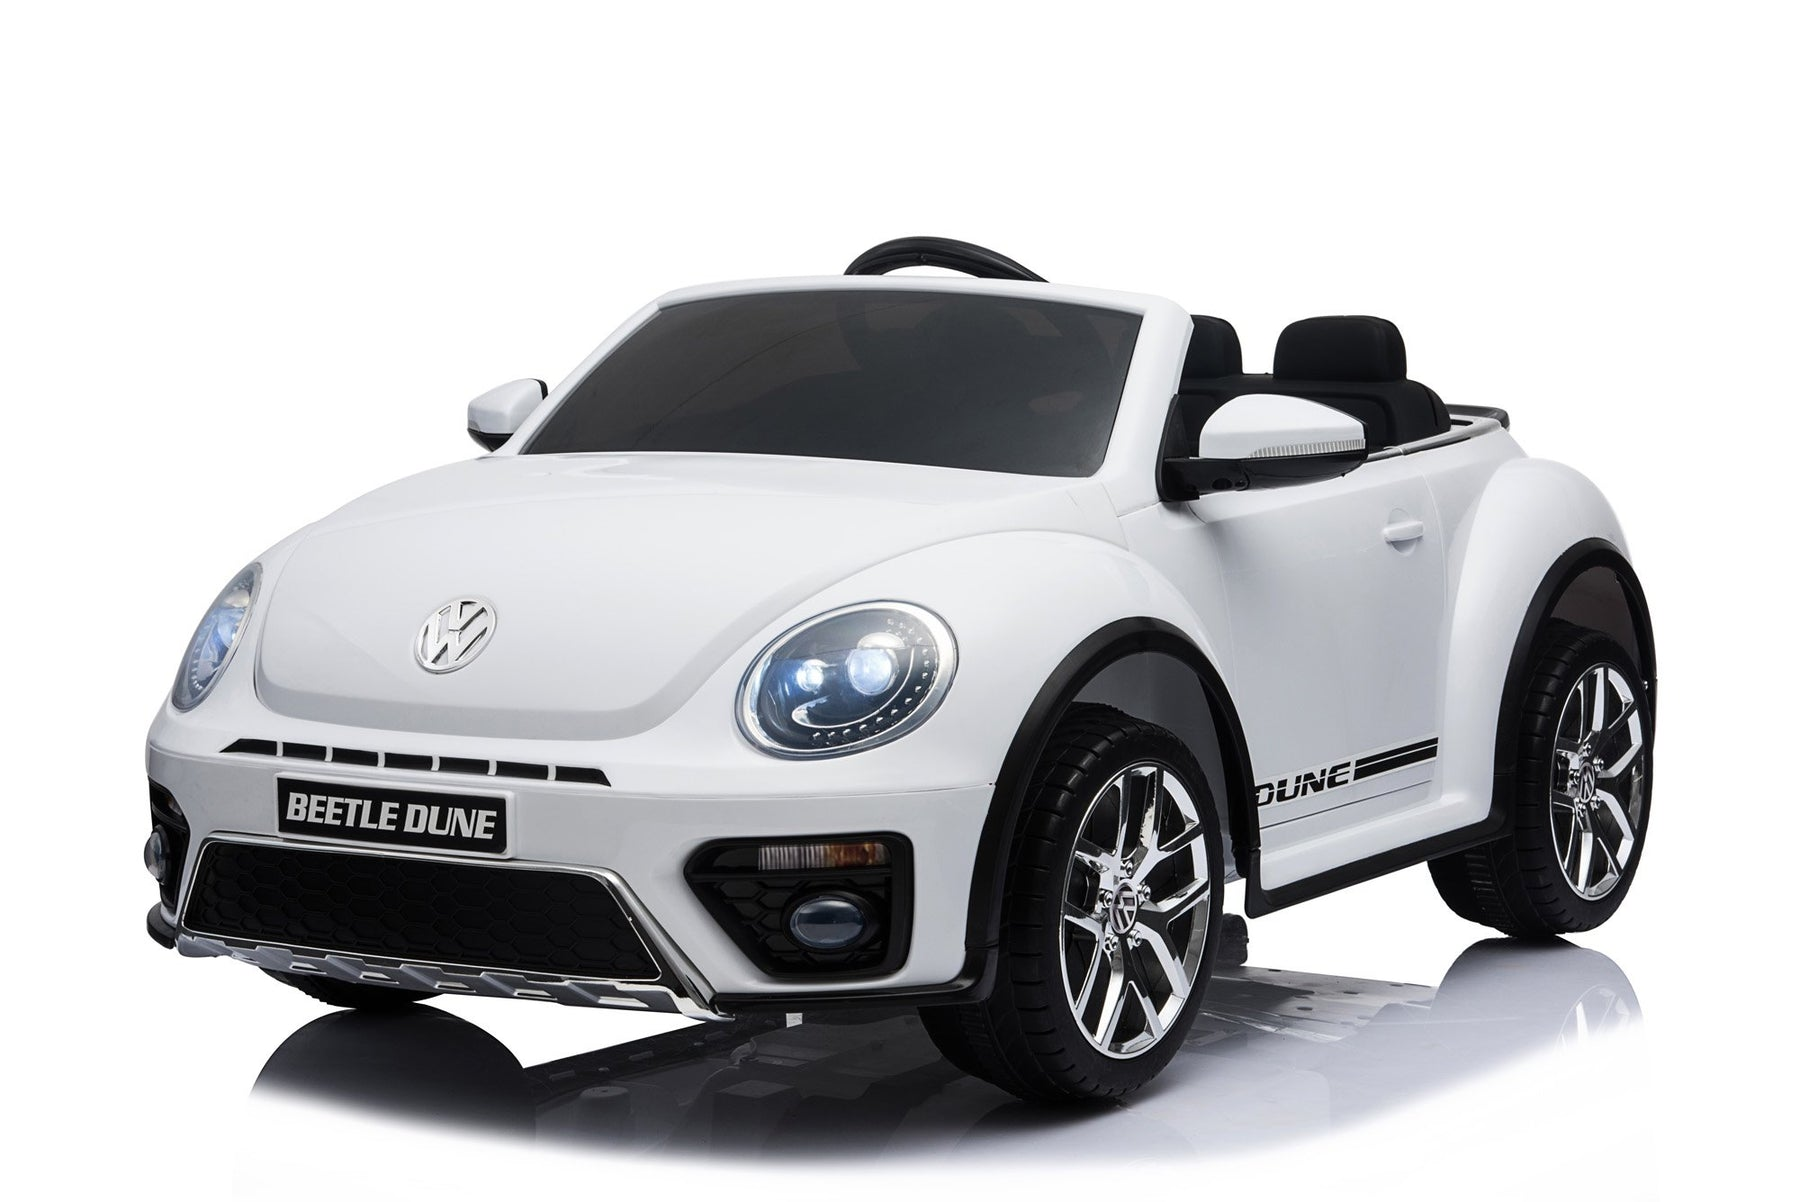 12V 4.5AH Electric Ride on Volkswagen Beetle (3 colors) - S303 - GADGET EXPRESS®